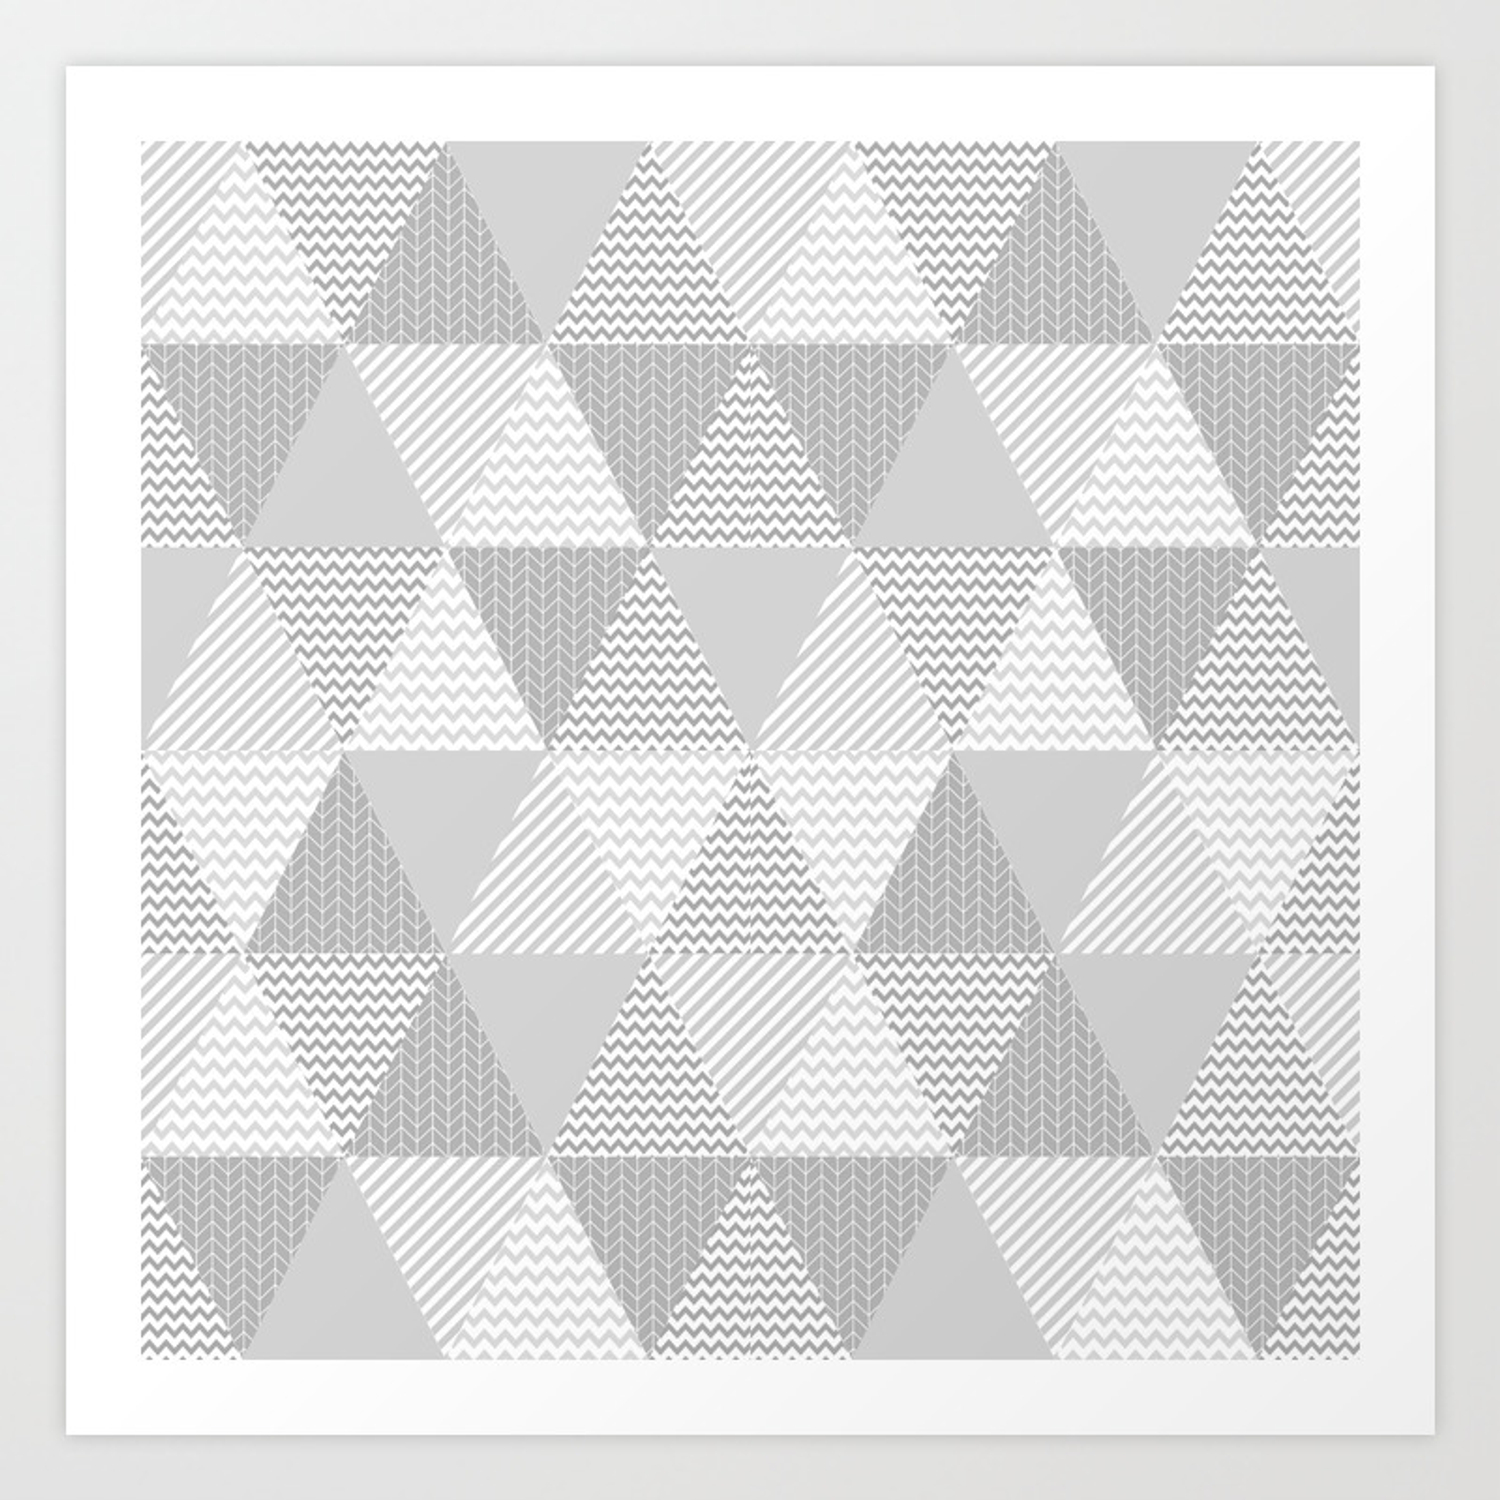 triangle quilt pattern grey and white minimal modern basic nursery art print by charlottewinter